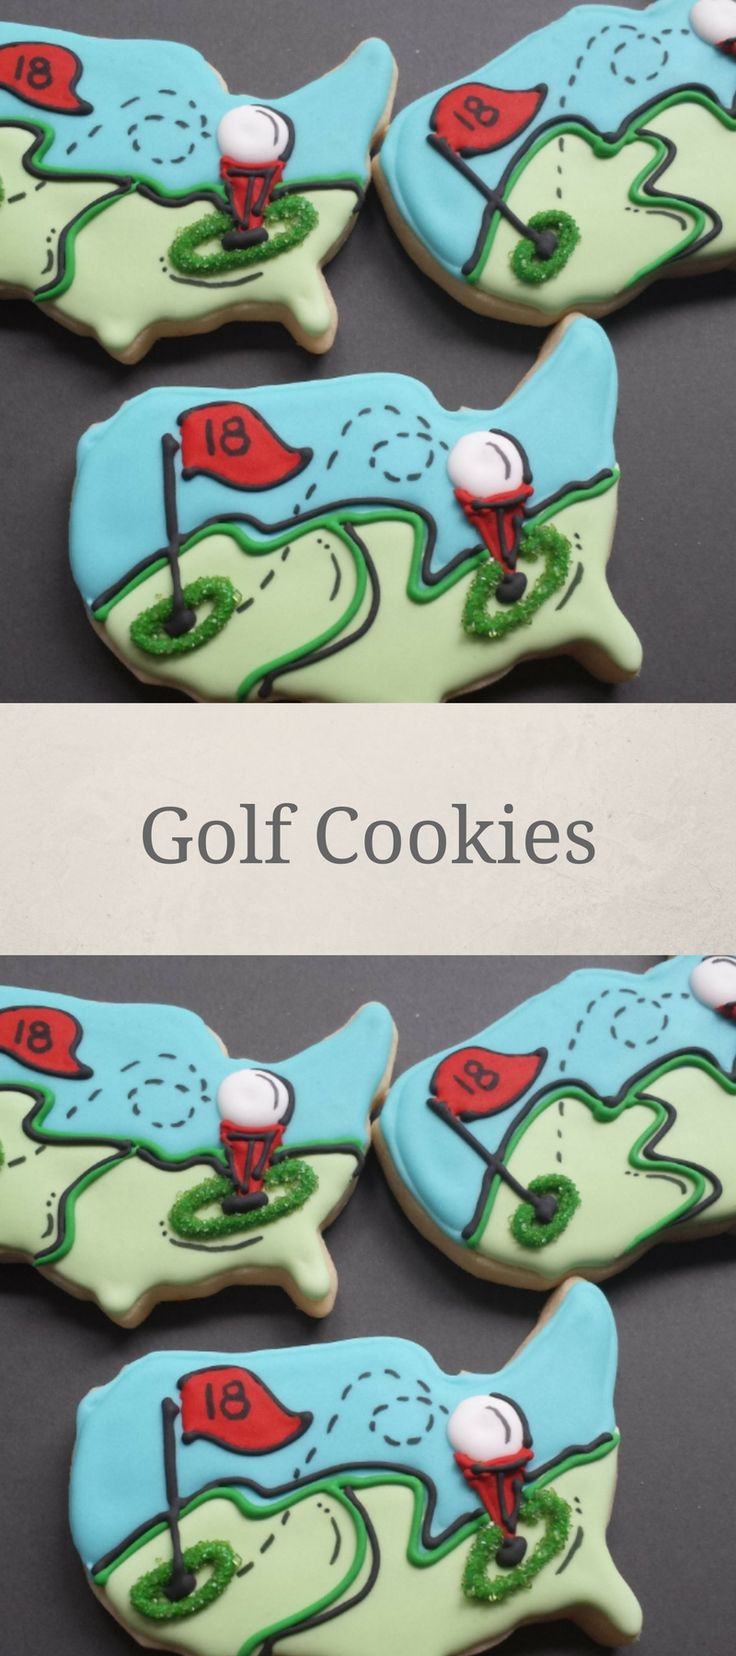 Golf Sport Custom Sugar Cookies, Sports Outdoor America Country Golf Shape Cookies, Father's Day Golf Party Favors, Country Club Golf field #affiliate